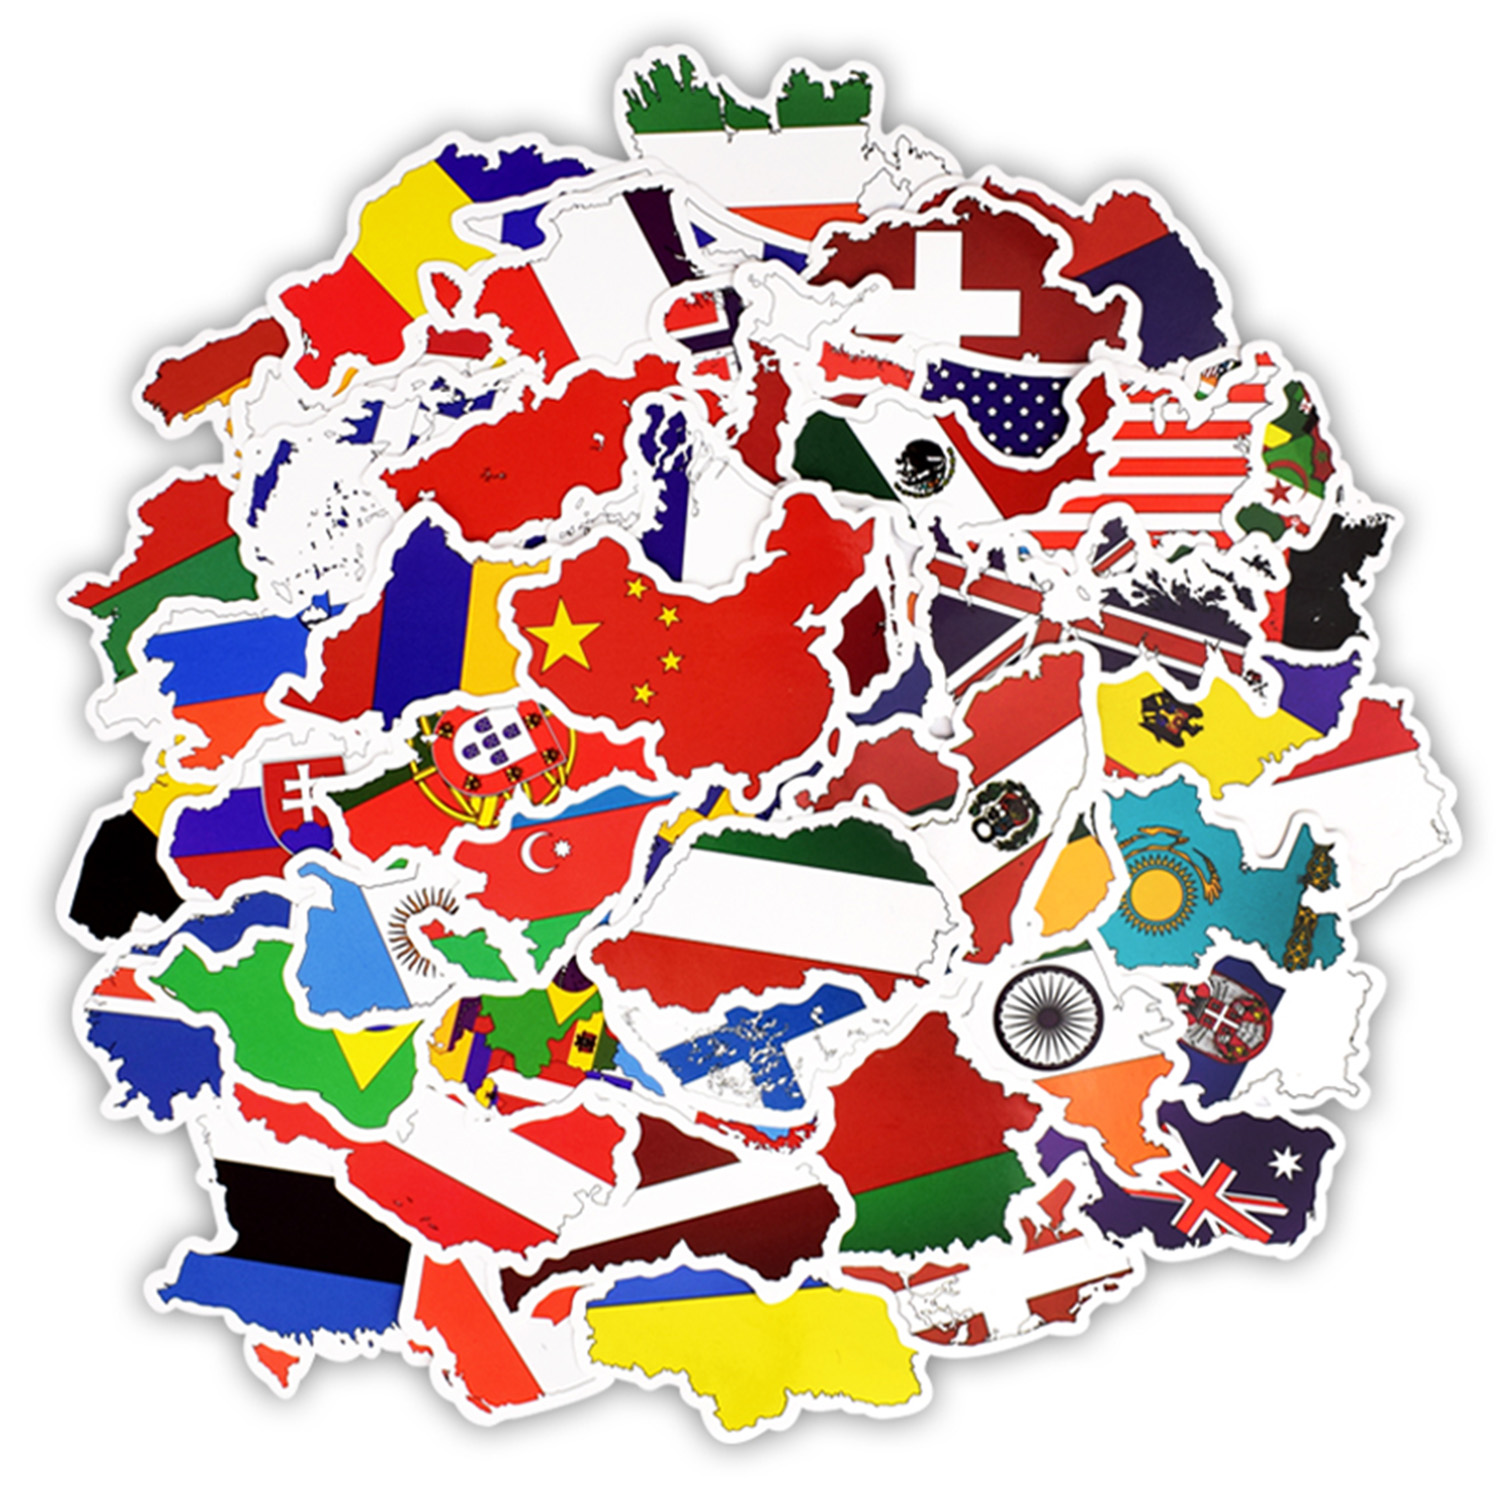 50 PCS National Flags Sticker Toys For Children Watercolor Countries Map Travel Decal Stickers To DIY Laptop Luggage Skateboard